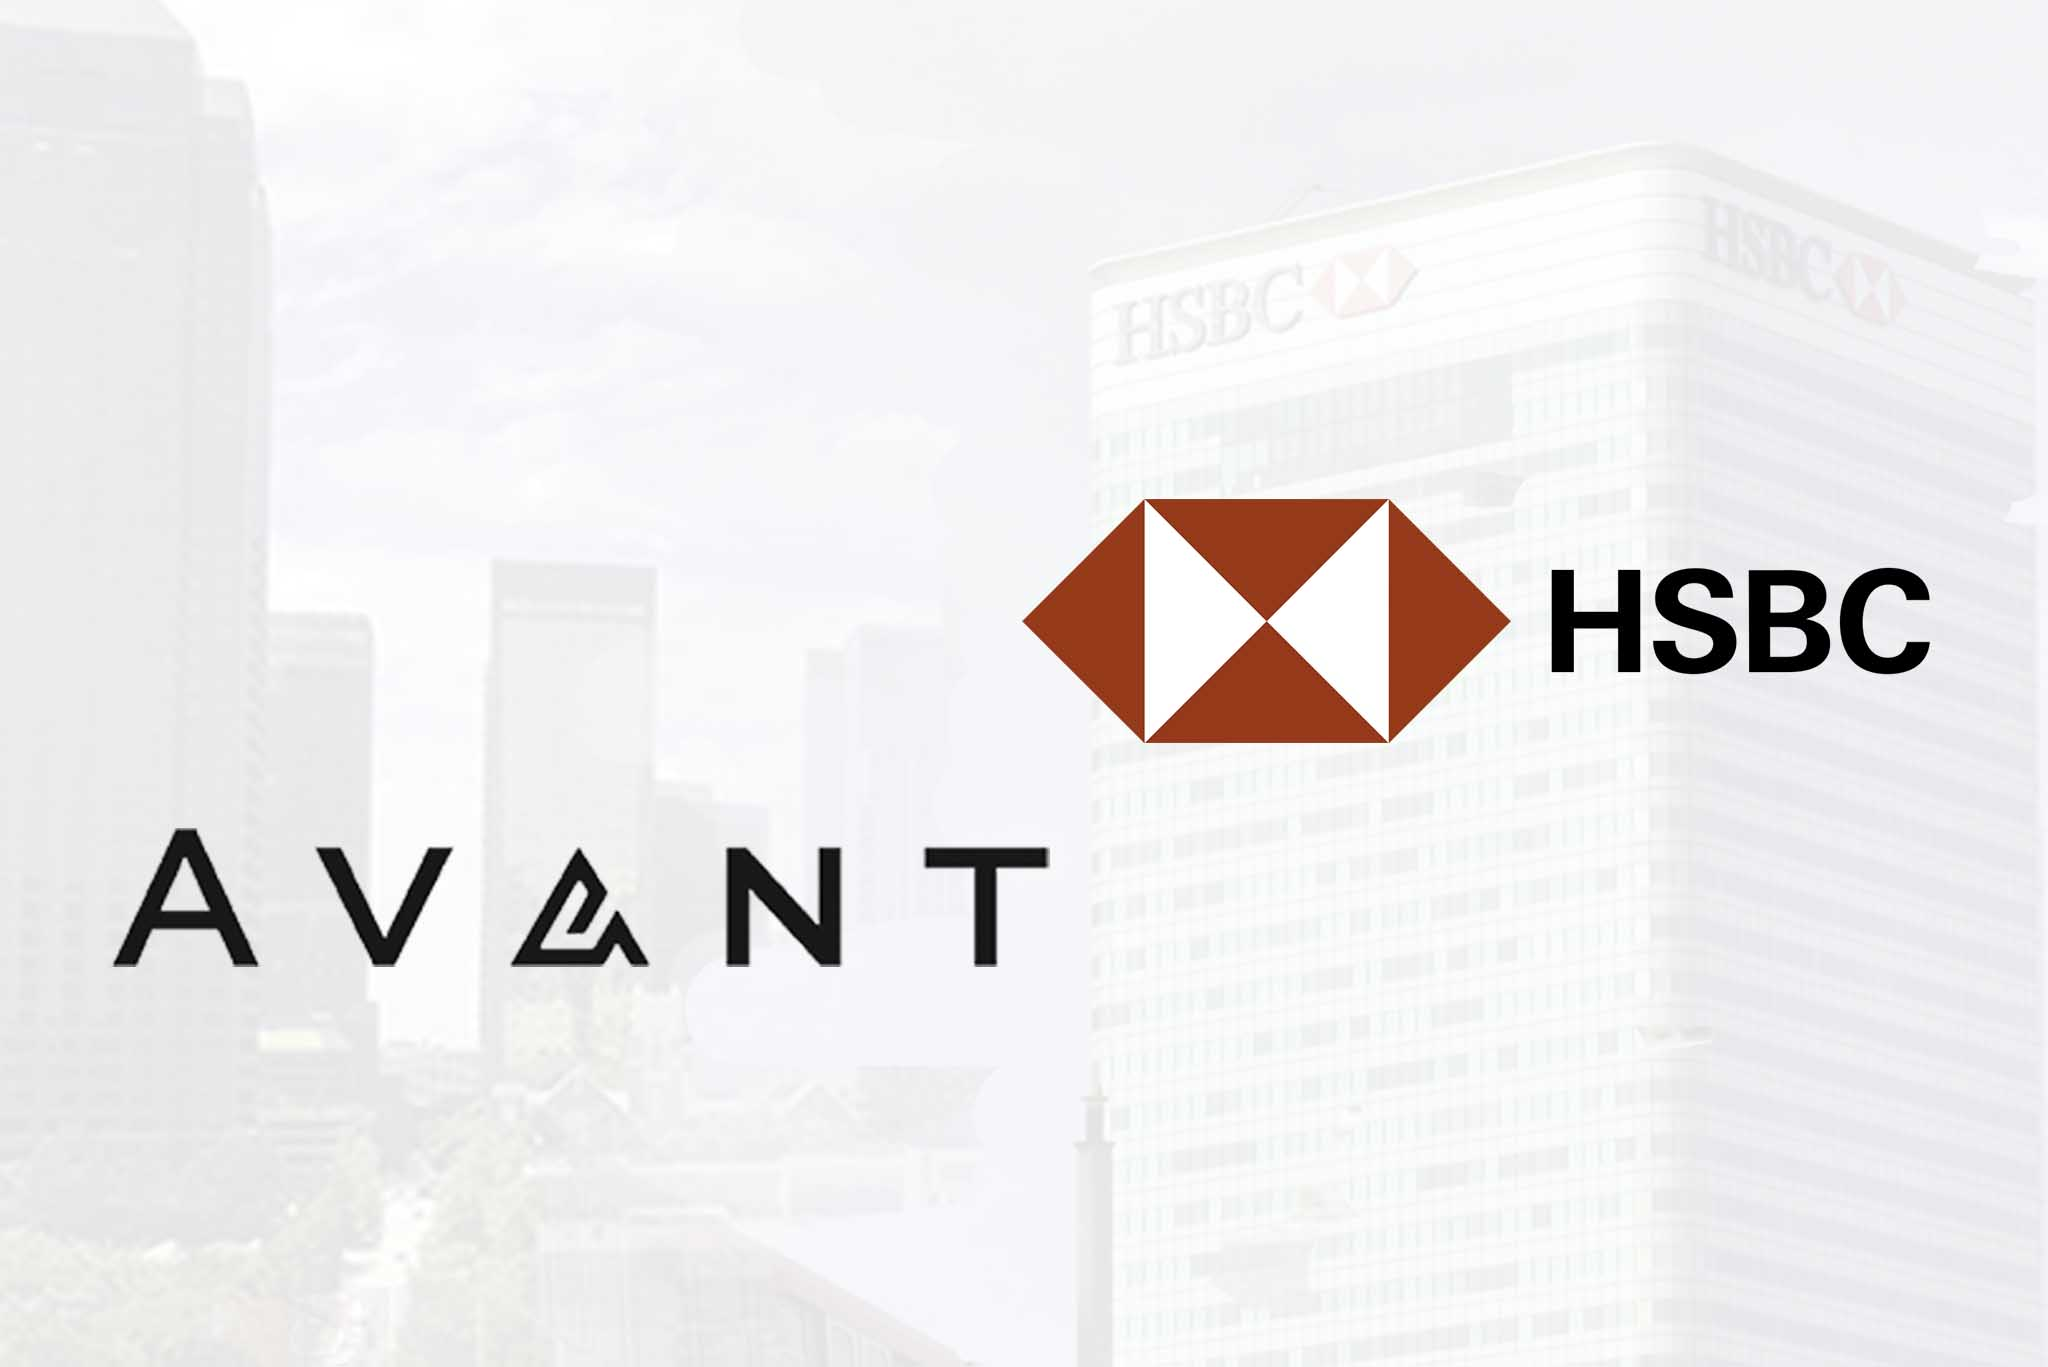 HSBC parnters with Avant to offer personal loans